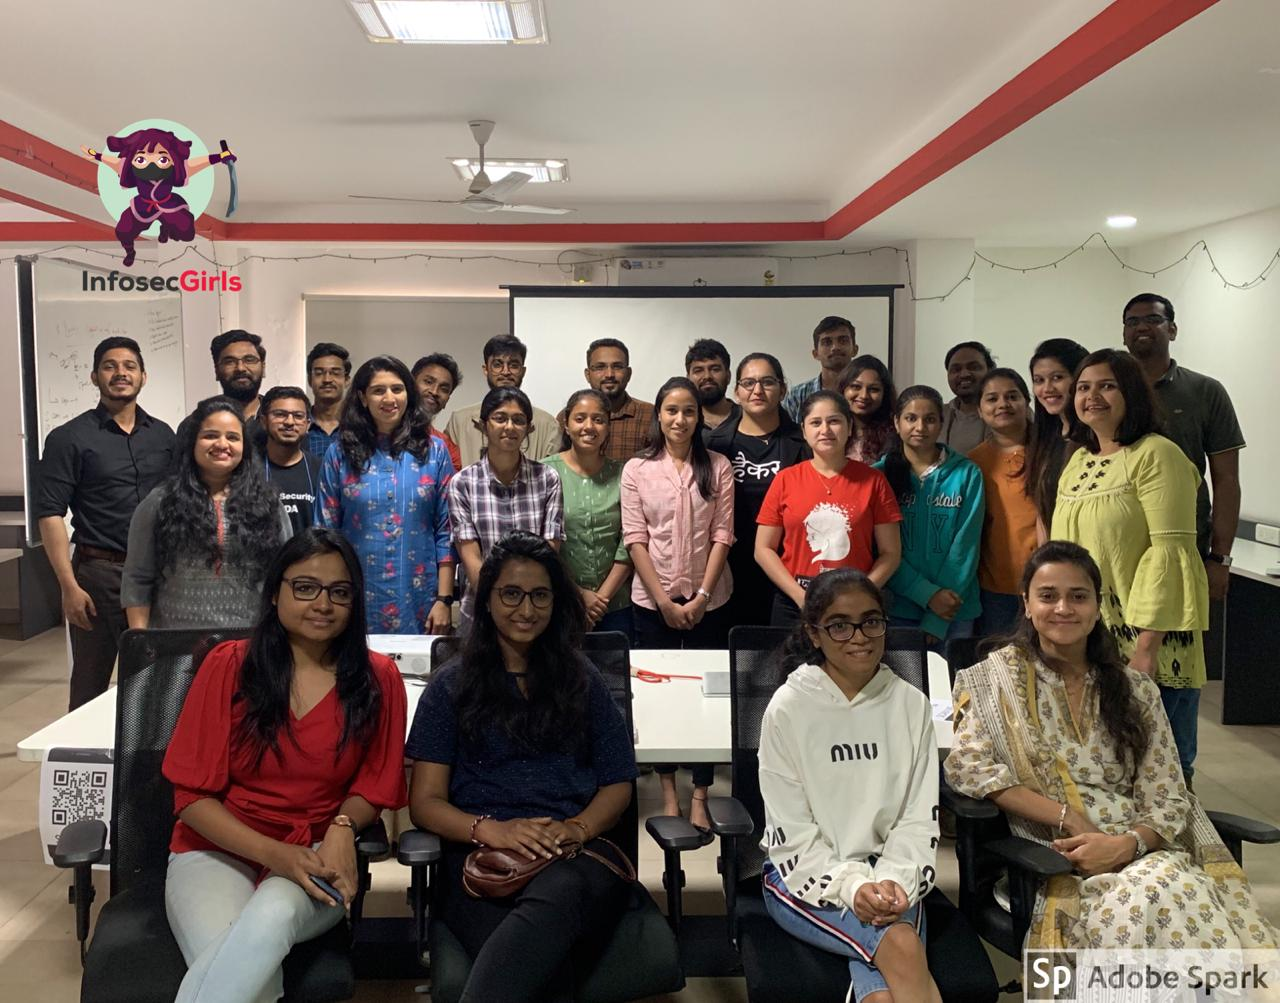 InfoSecgirls meetup in Bangalore on February 29th 2020